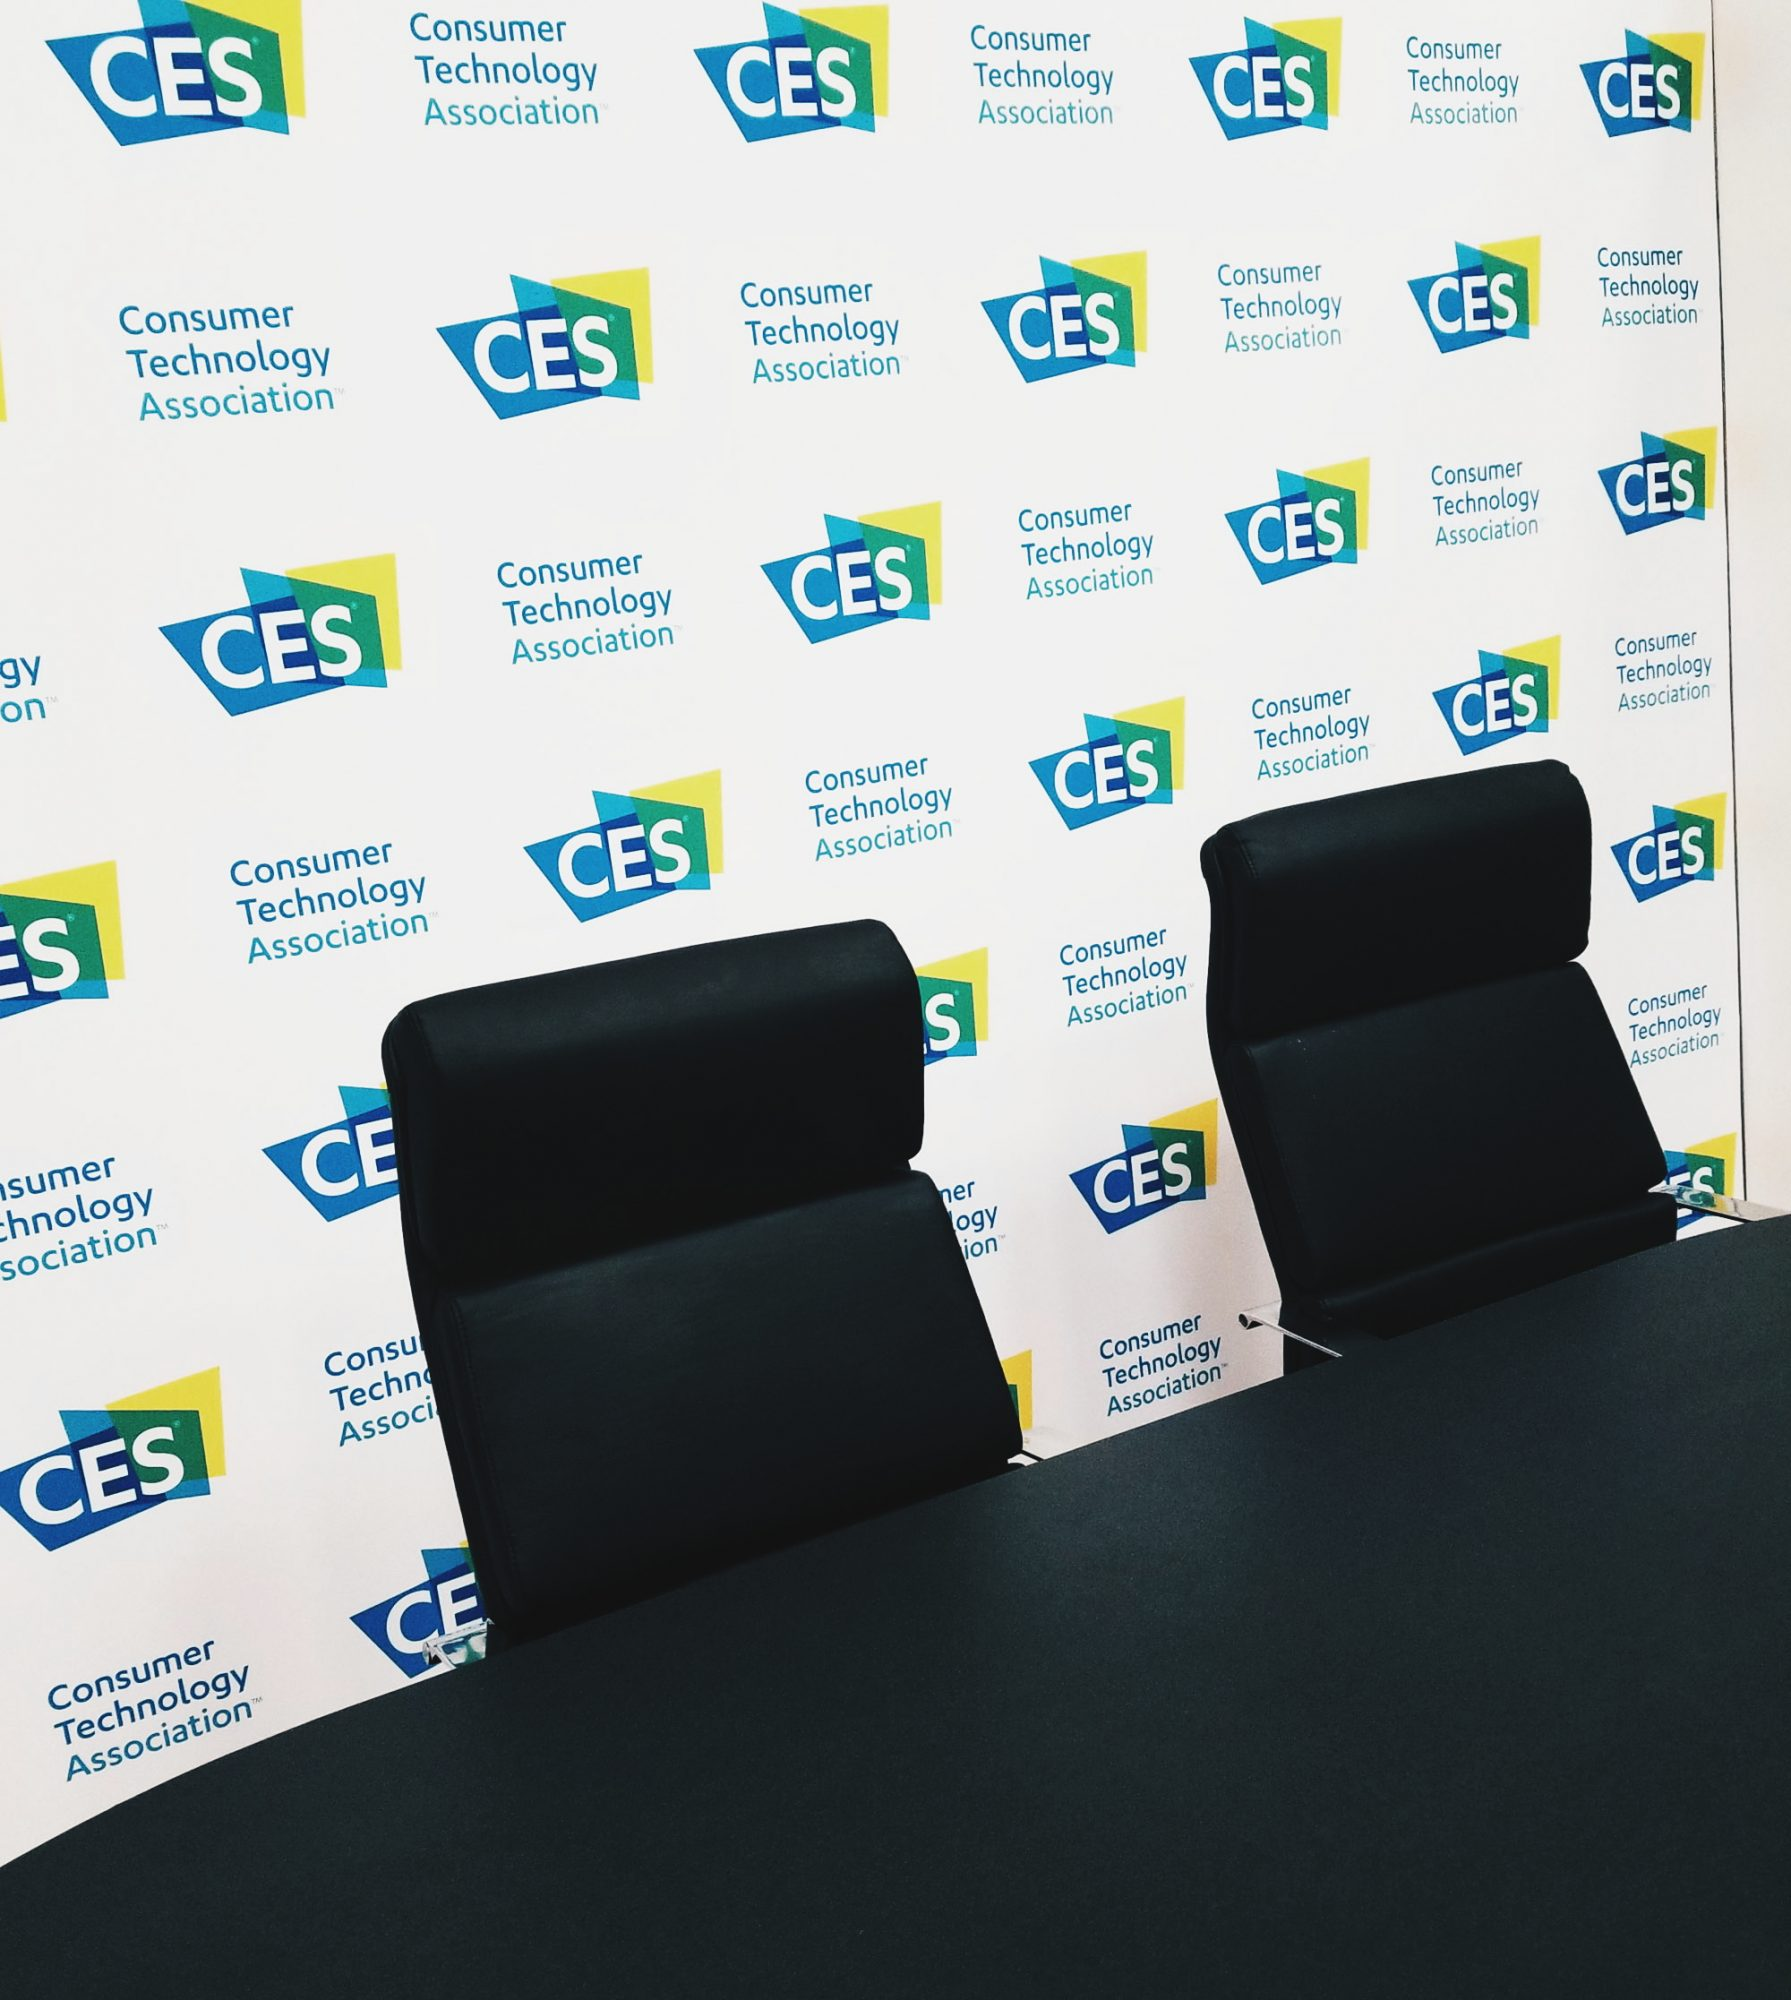 CES 2018 Media Meeting Rooms